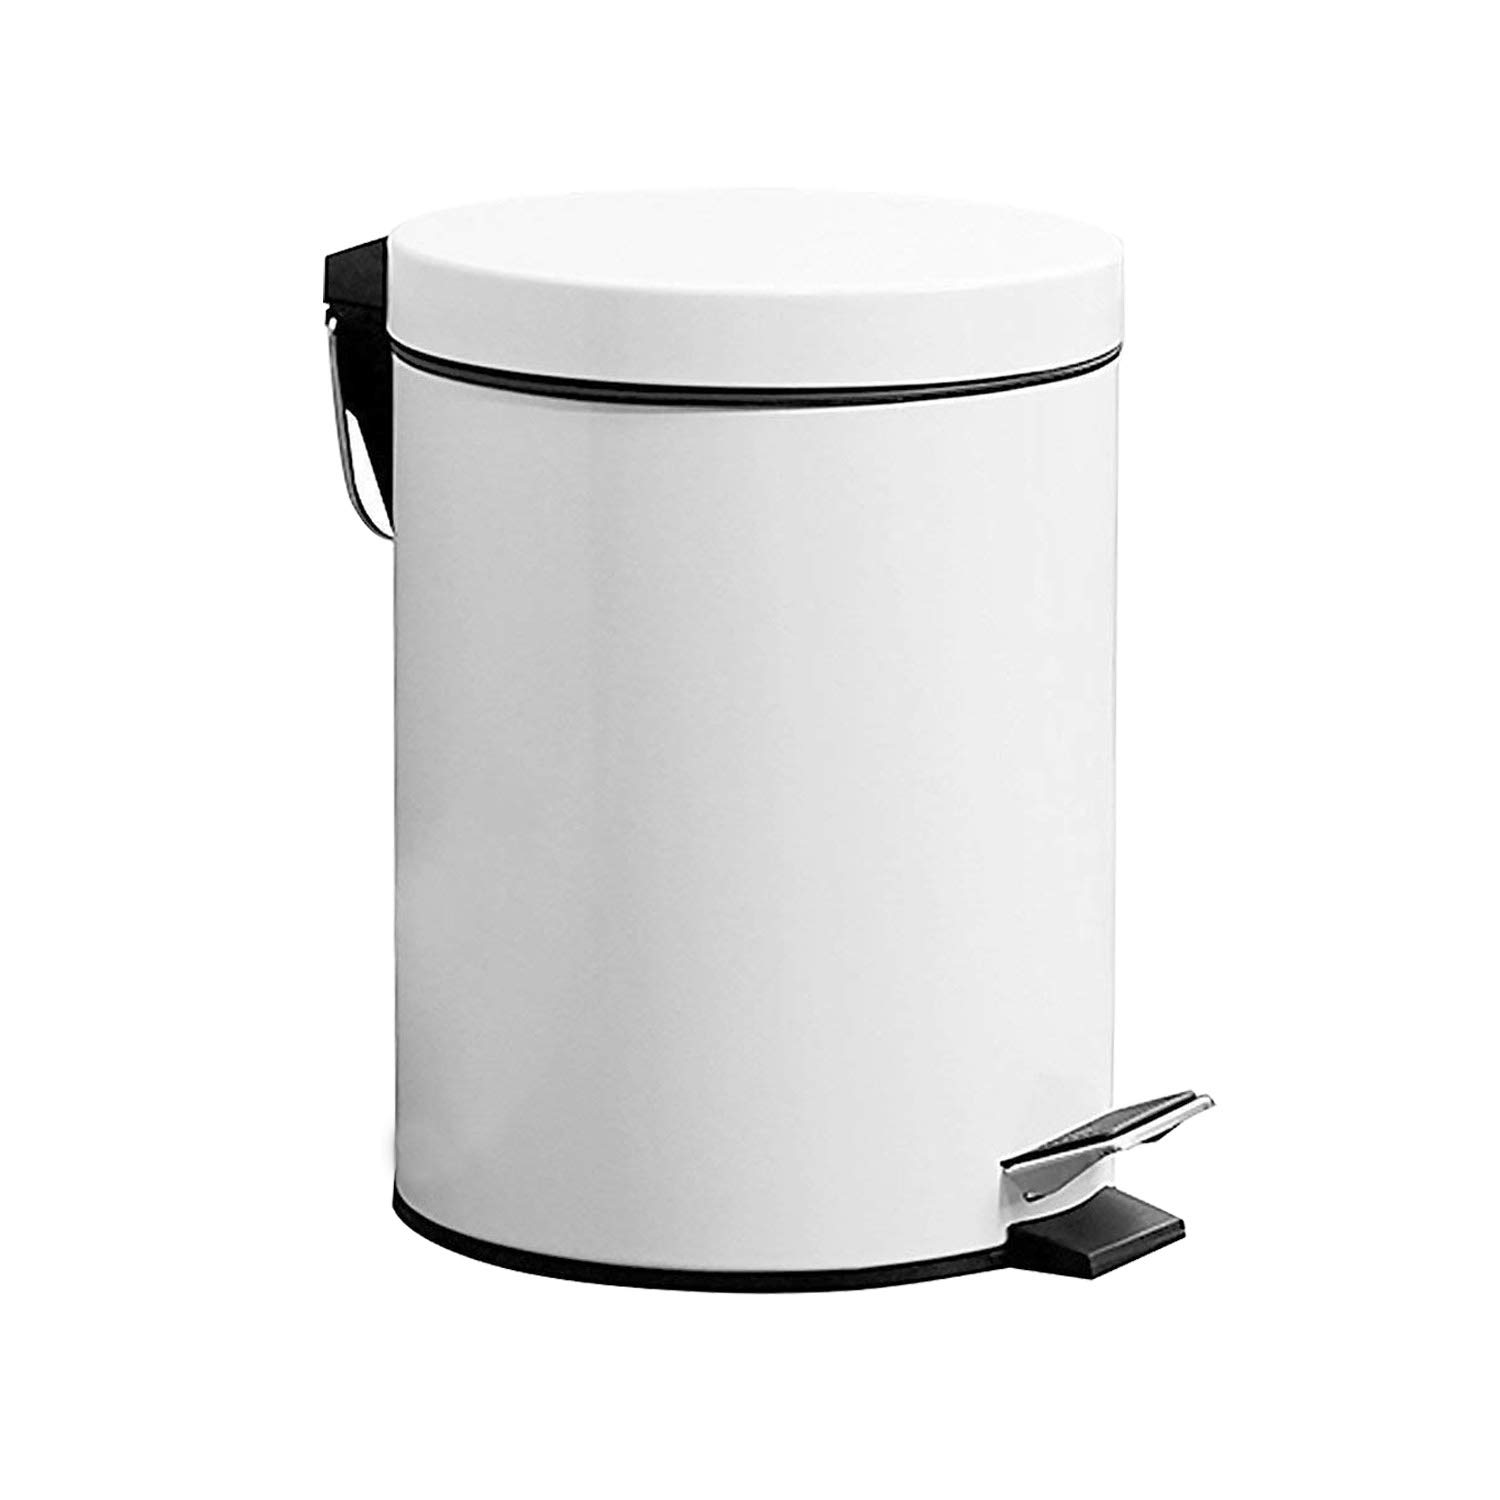 GiniHome Small Trash Can for Kitchen & Bathroom, Garbage Bin-Soft Close, Waterproof and Easy to Clean-5 Liter/1.3 Gallon (White)